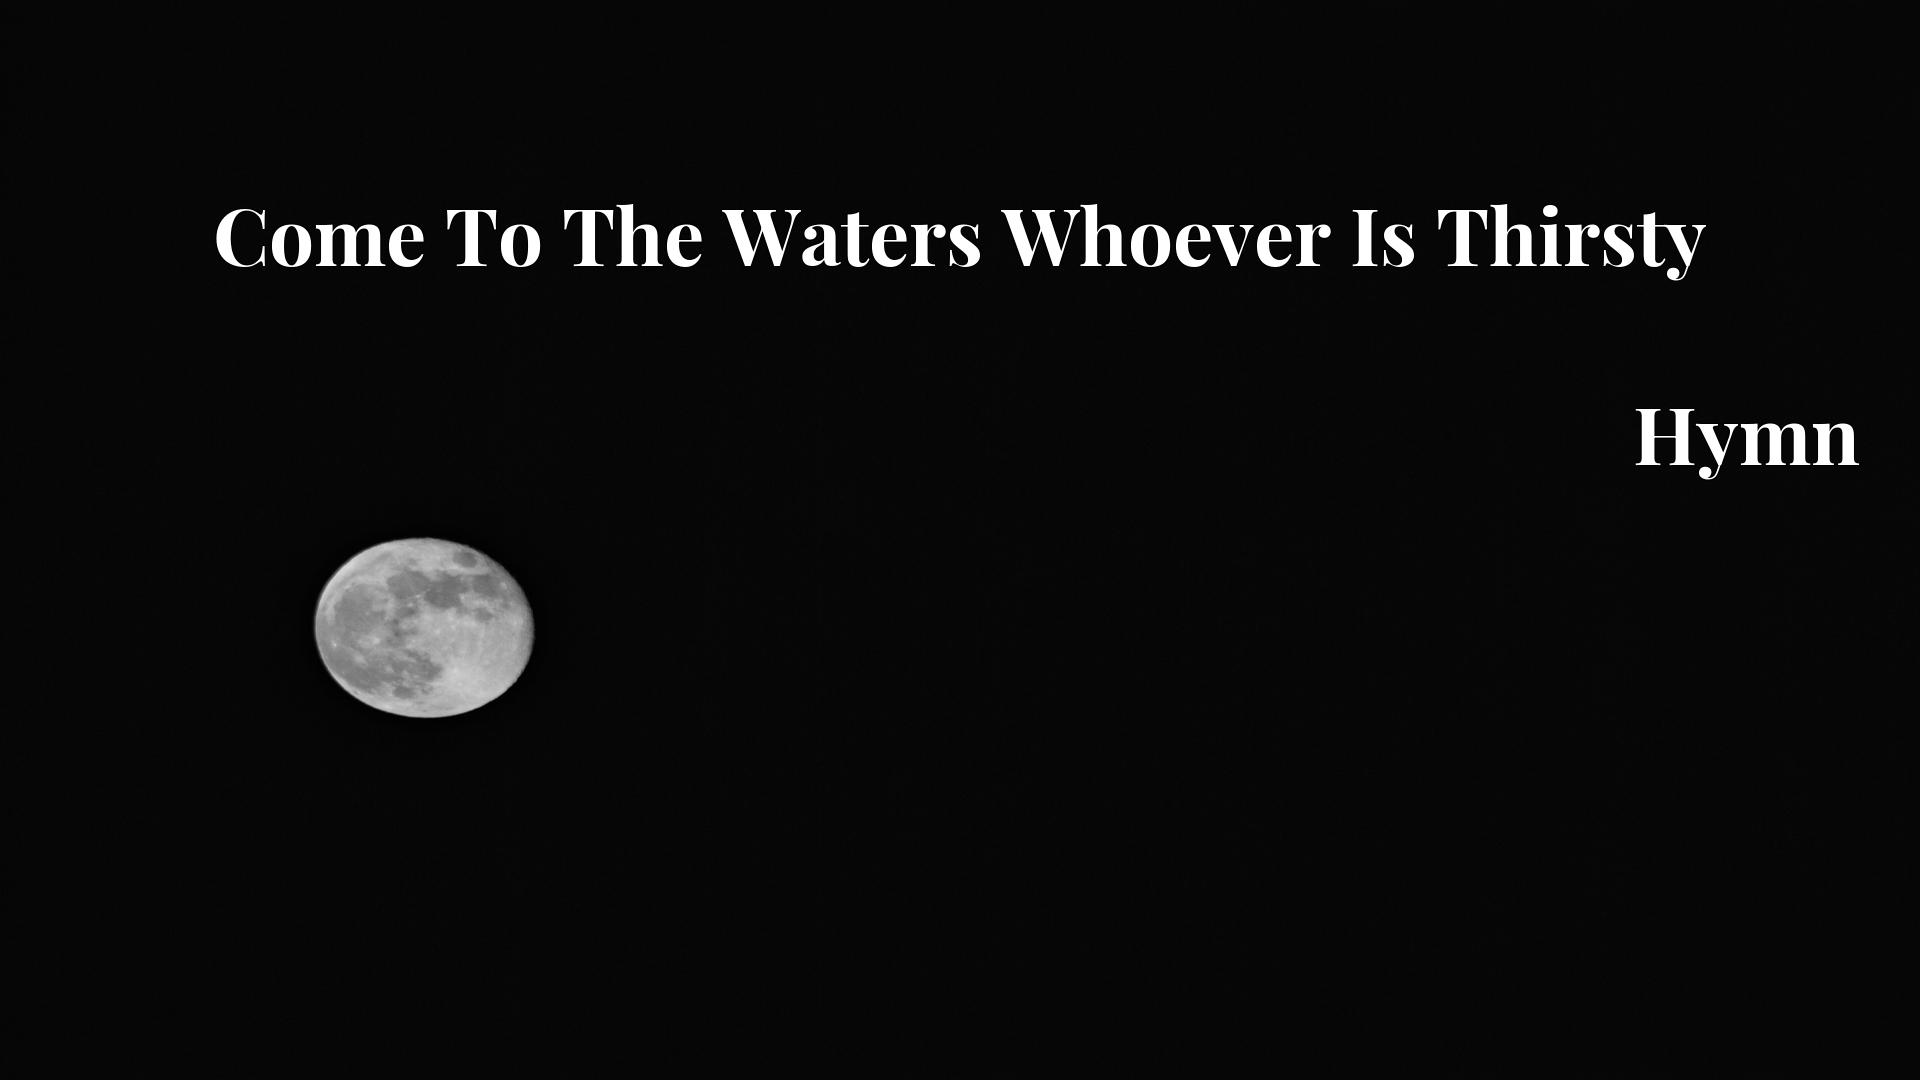 Come To The Waters Whoever Is Thirsty - Hymn